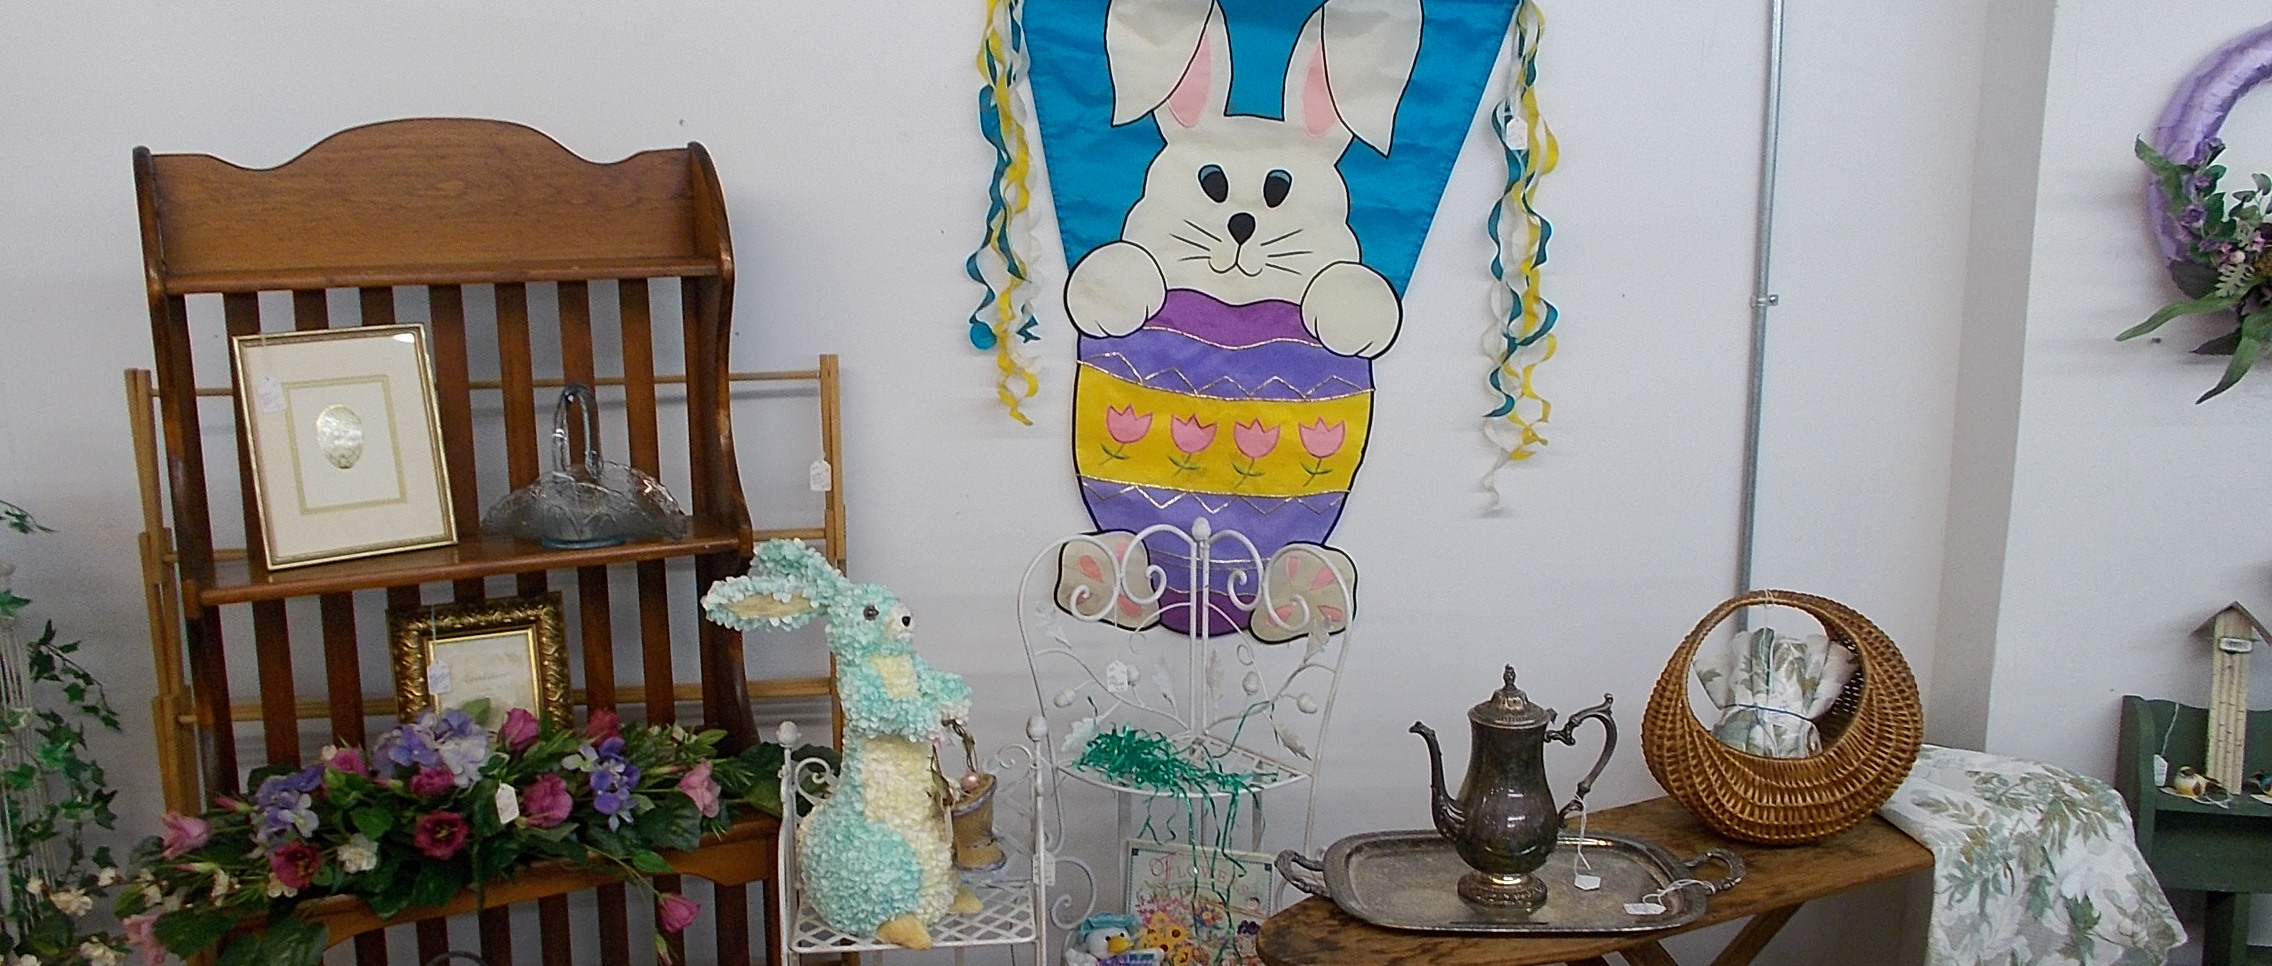 banner-easter-2-204-treasures-under-sugar-loaf-winona-minnesota-antiques-collectibles-crafts